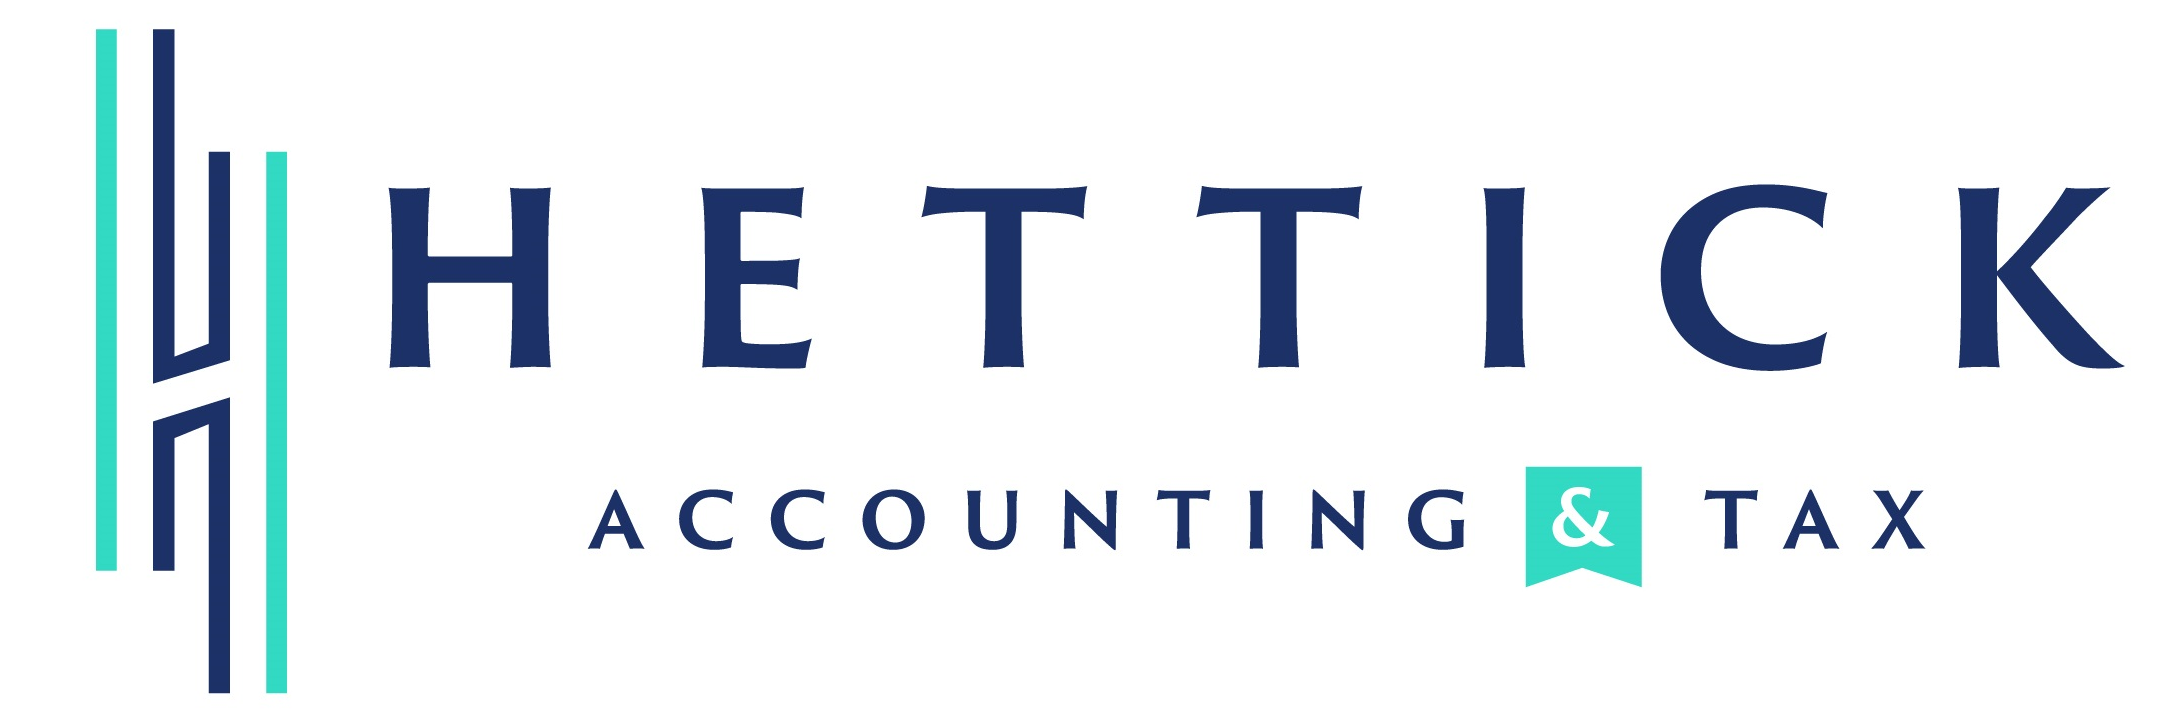 Hettick Accounting & Tax, LLC